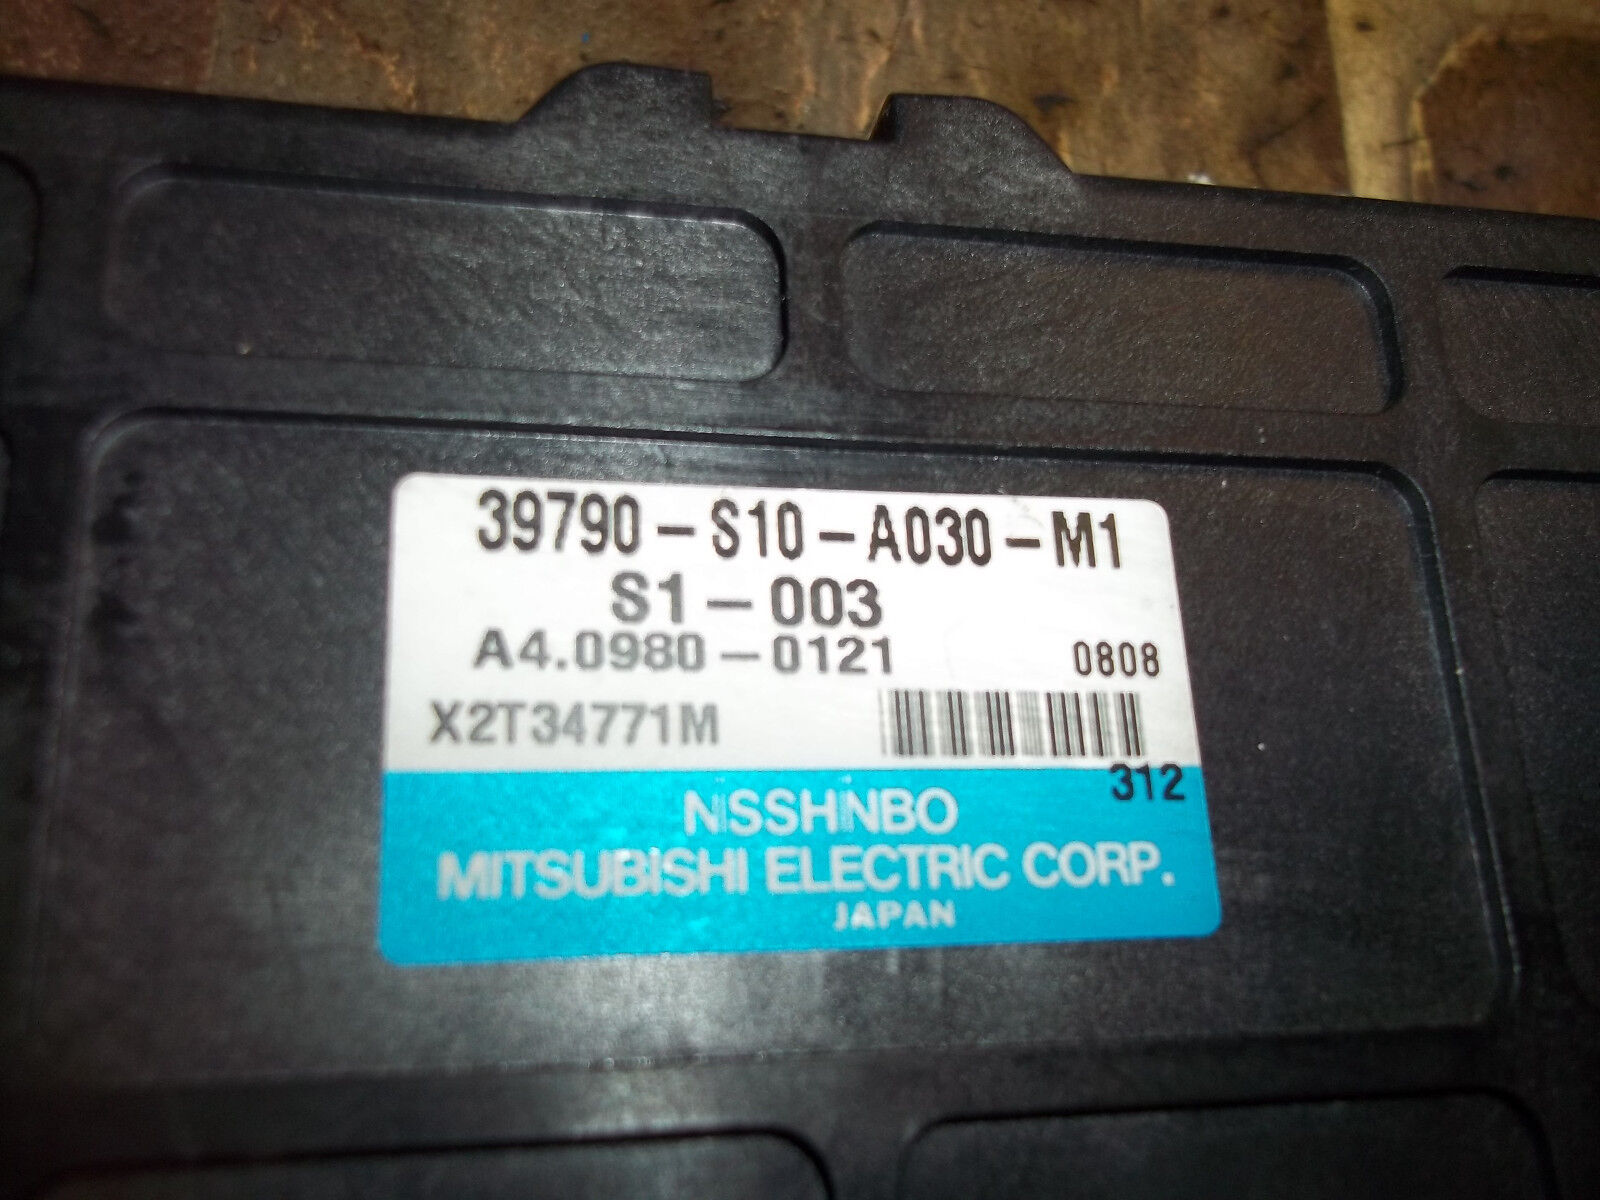 Used 2003 Honda Cr V Computers Chips Cruise Control And Related Blower Motor Resistor 1997 2001 Crv Chassis Ecm Abs Computer Rh Kick Panel